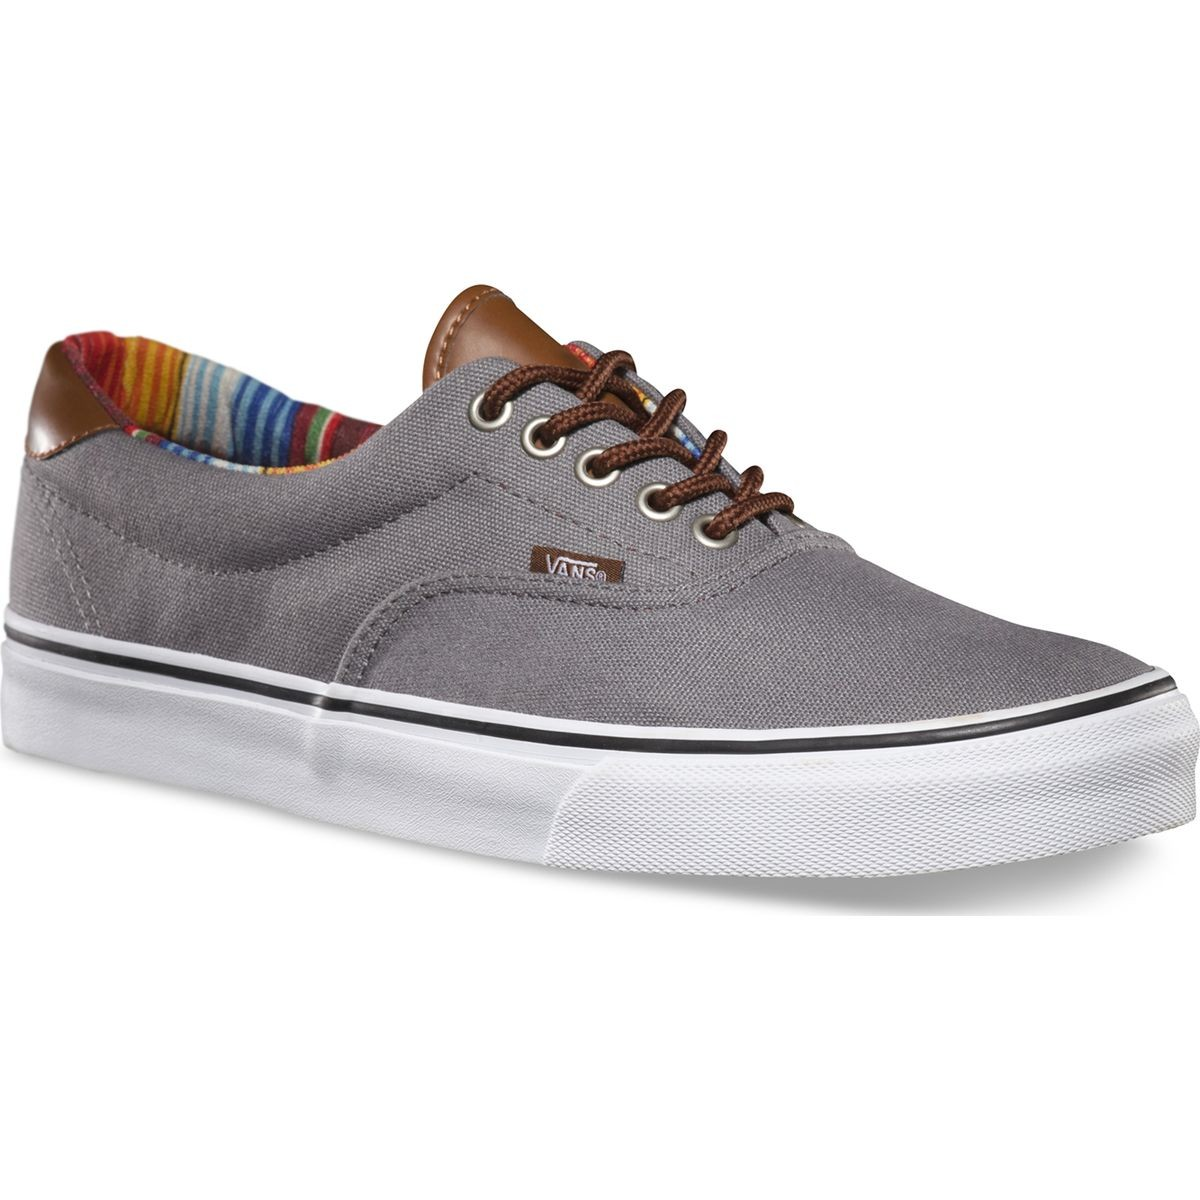 Vans C&L ERA 59 Shoes - Steel Gray/Multi Stripe - 8.0